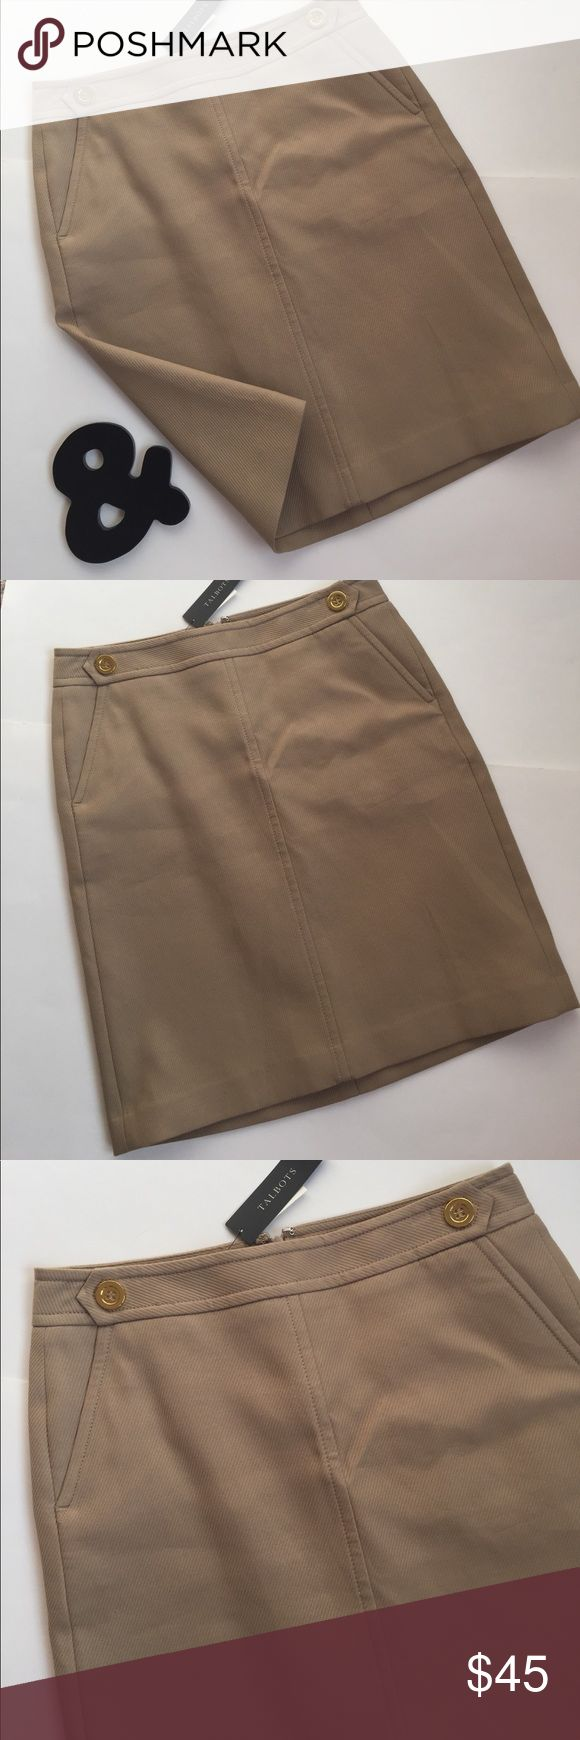 Talbots Tan Pencil Skirt Talbots pencil skirt in Tan/Khaki color. Front slant pockets. Two gold colored waist button detail. 100% Polyester lining. Concealed back zipper. 100% Cotton. Textured. Extra button. Perfect condition with tags. Talbots Skirts Pencil